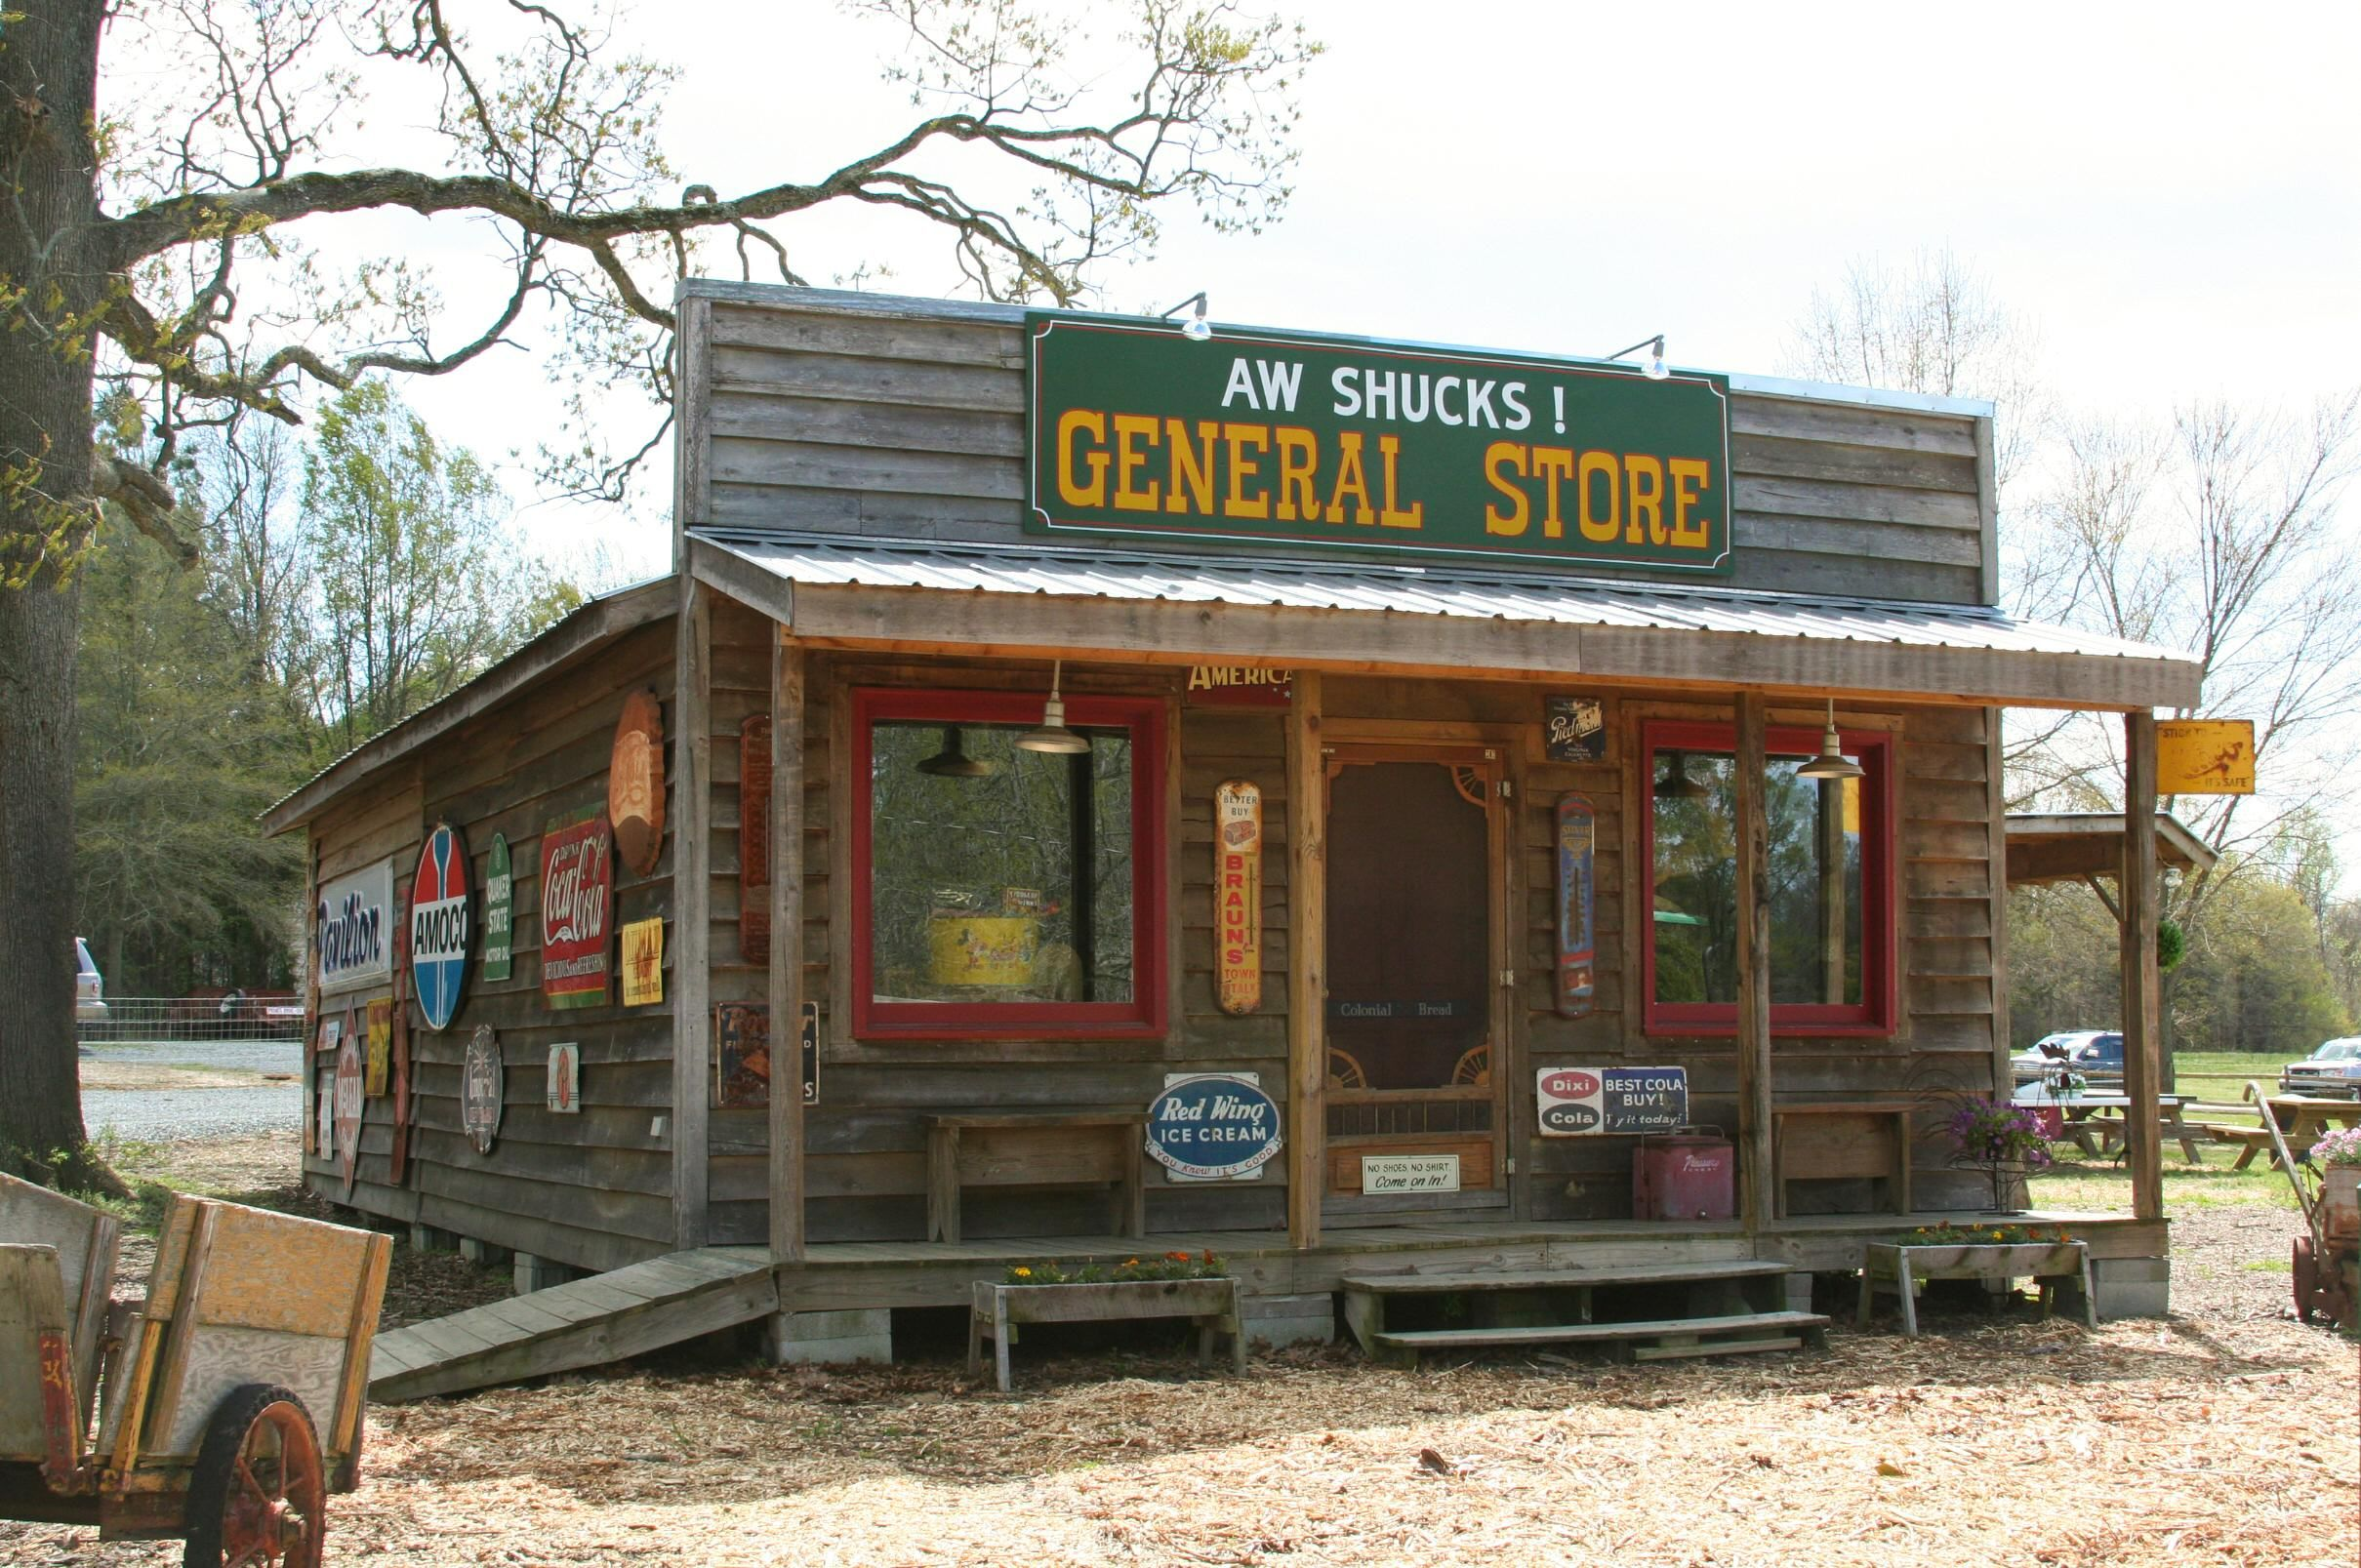 General Store Aw Shucks Aw Shucks Old General Stores Old